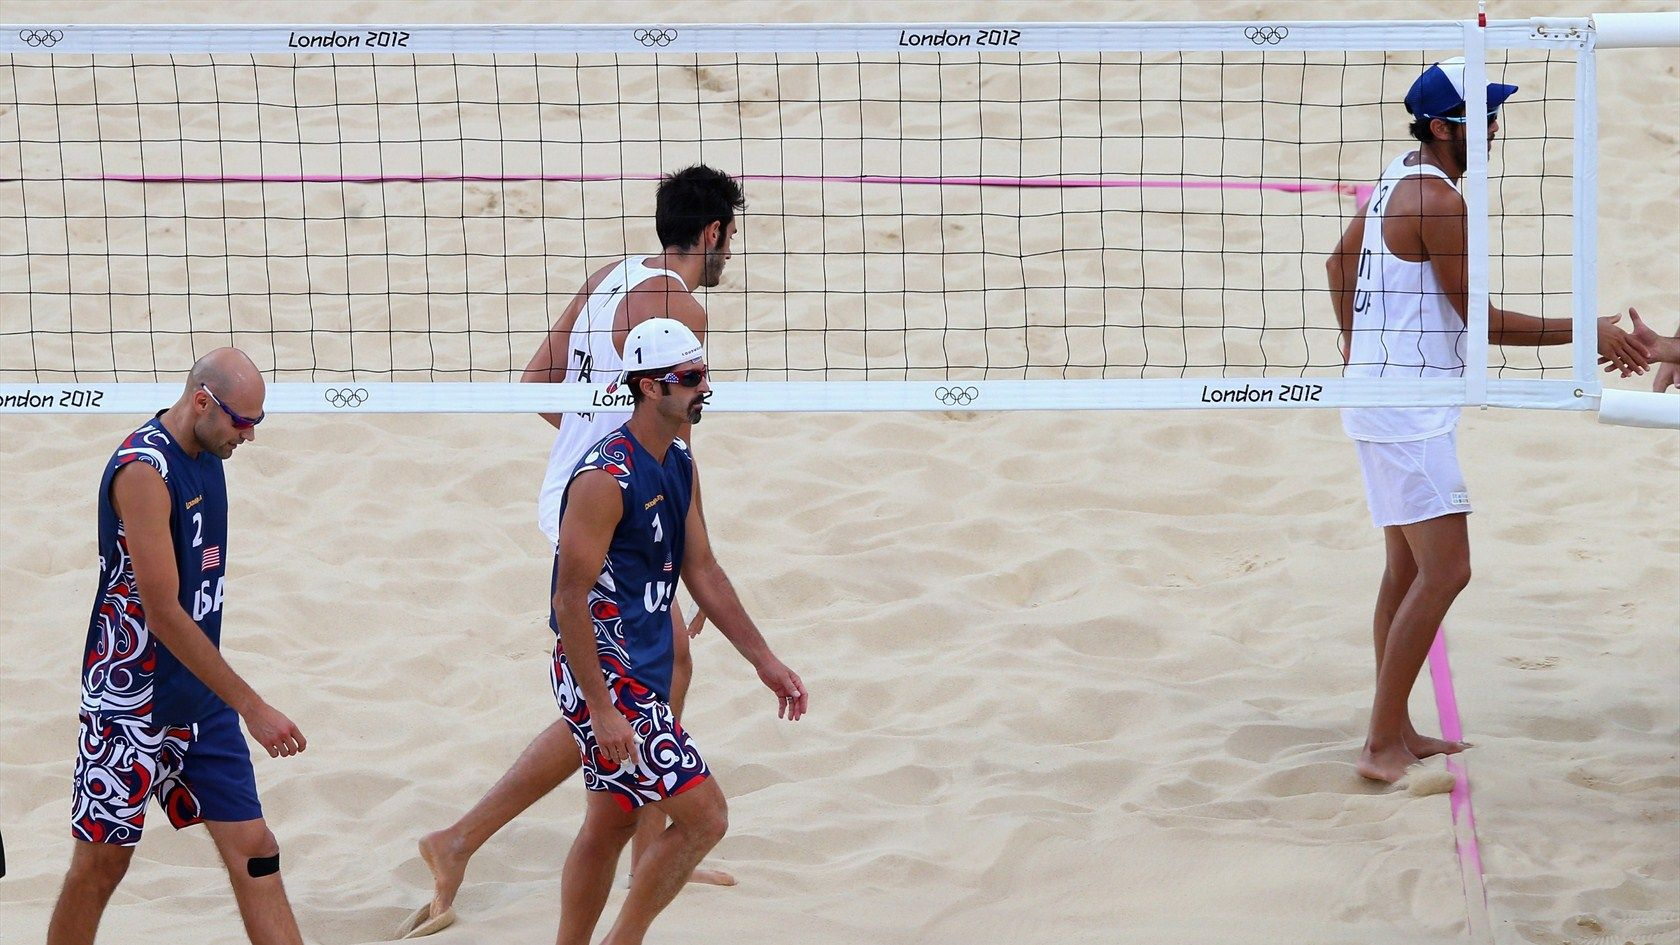 Defending Olympic Champions Phil Dalhausser And Todd Rogers Trudge Off The Court Following Their Shock Loss Volleyball Photos Beach Volleyball Olympic Champion